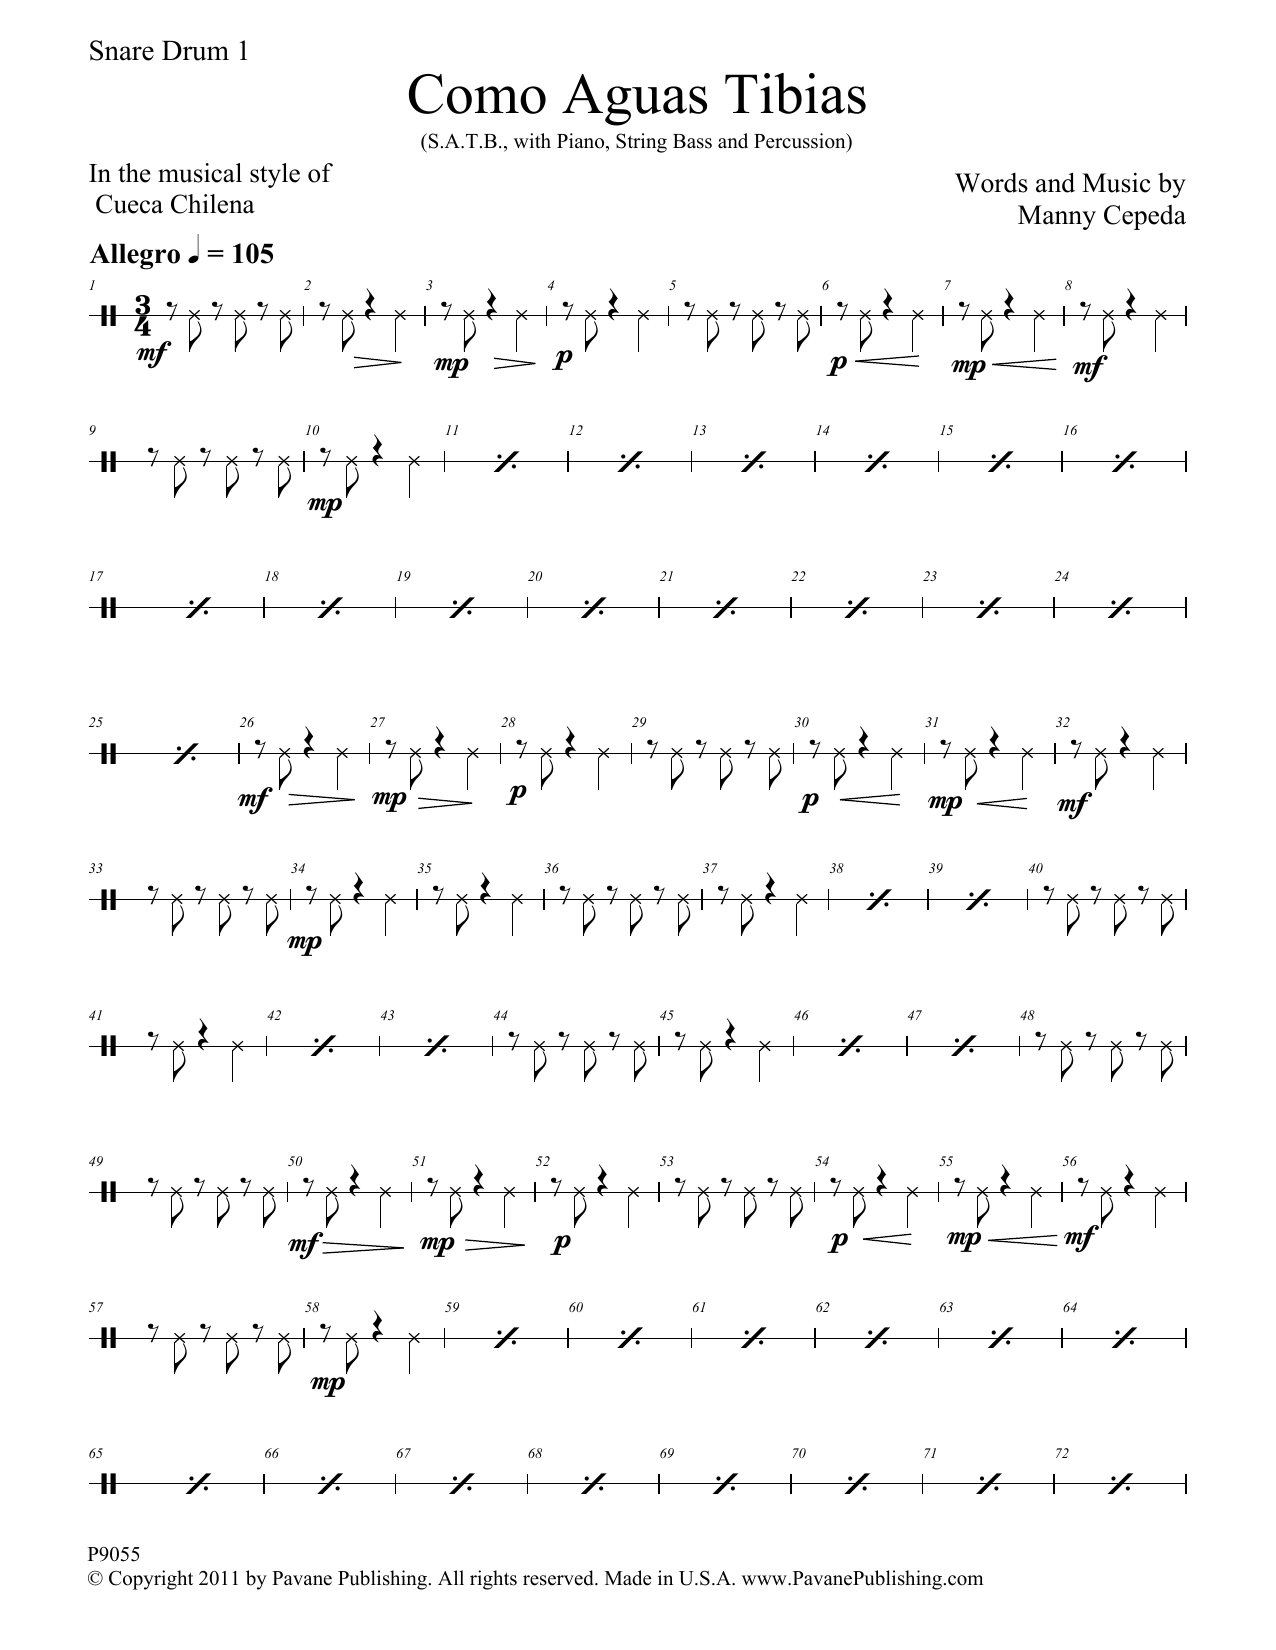 Como Aguas Tibias - Snare Drum Sheet Music